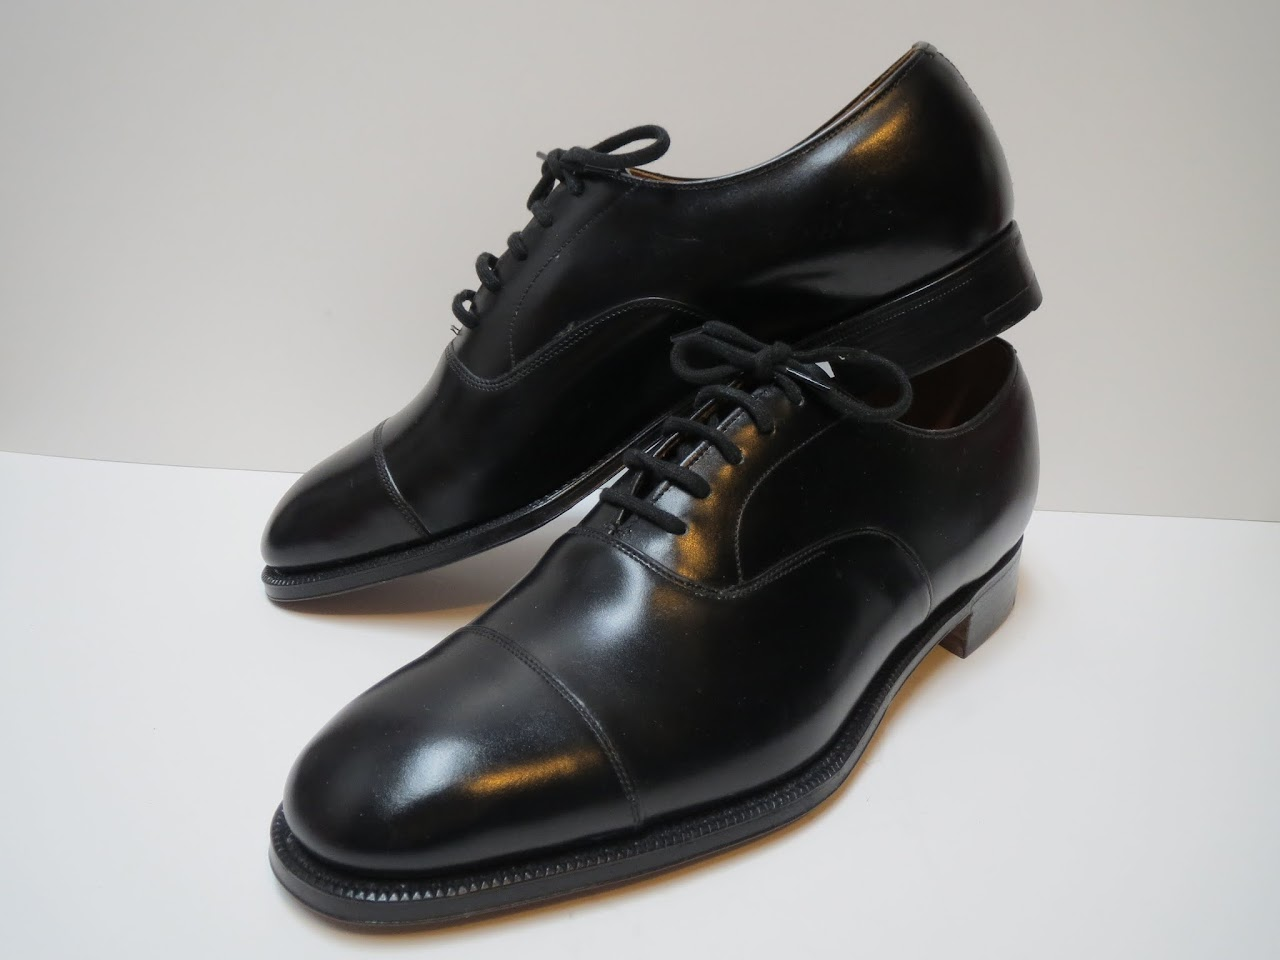 Church's Captoe Oxfords in Black